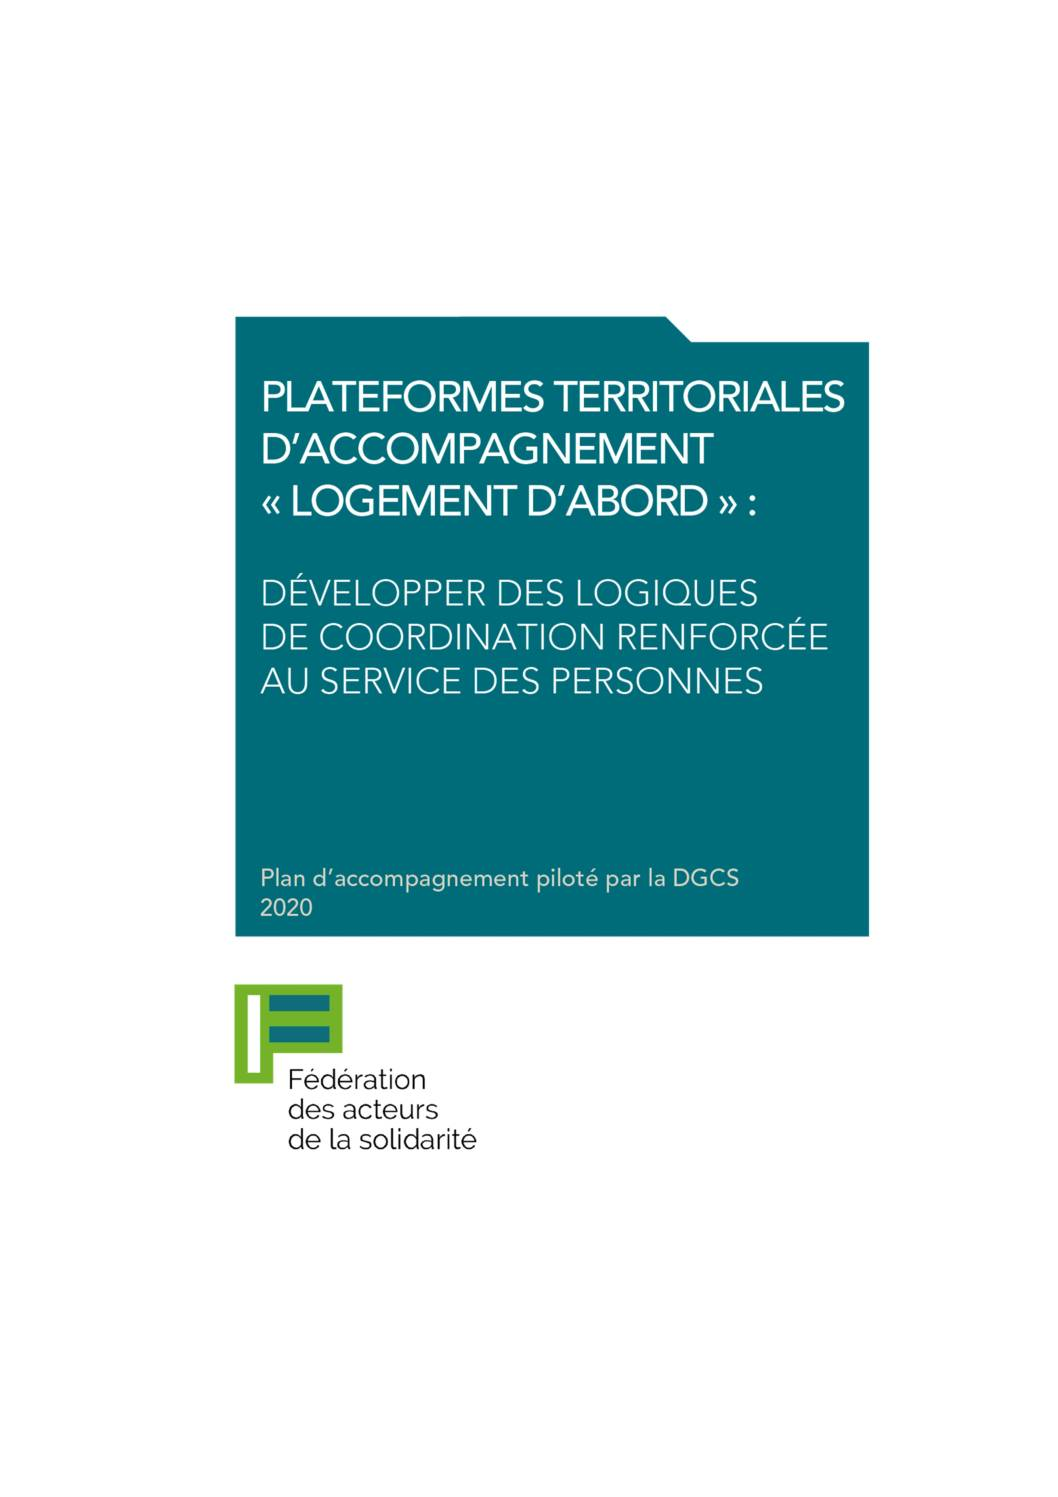 Plateforme territoriales d'accompagnement